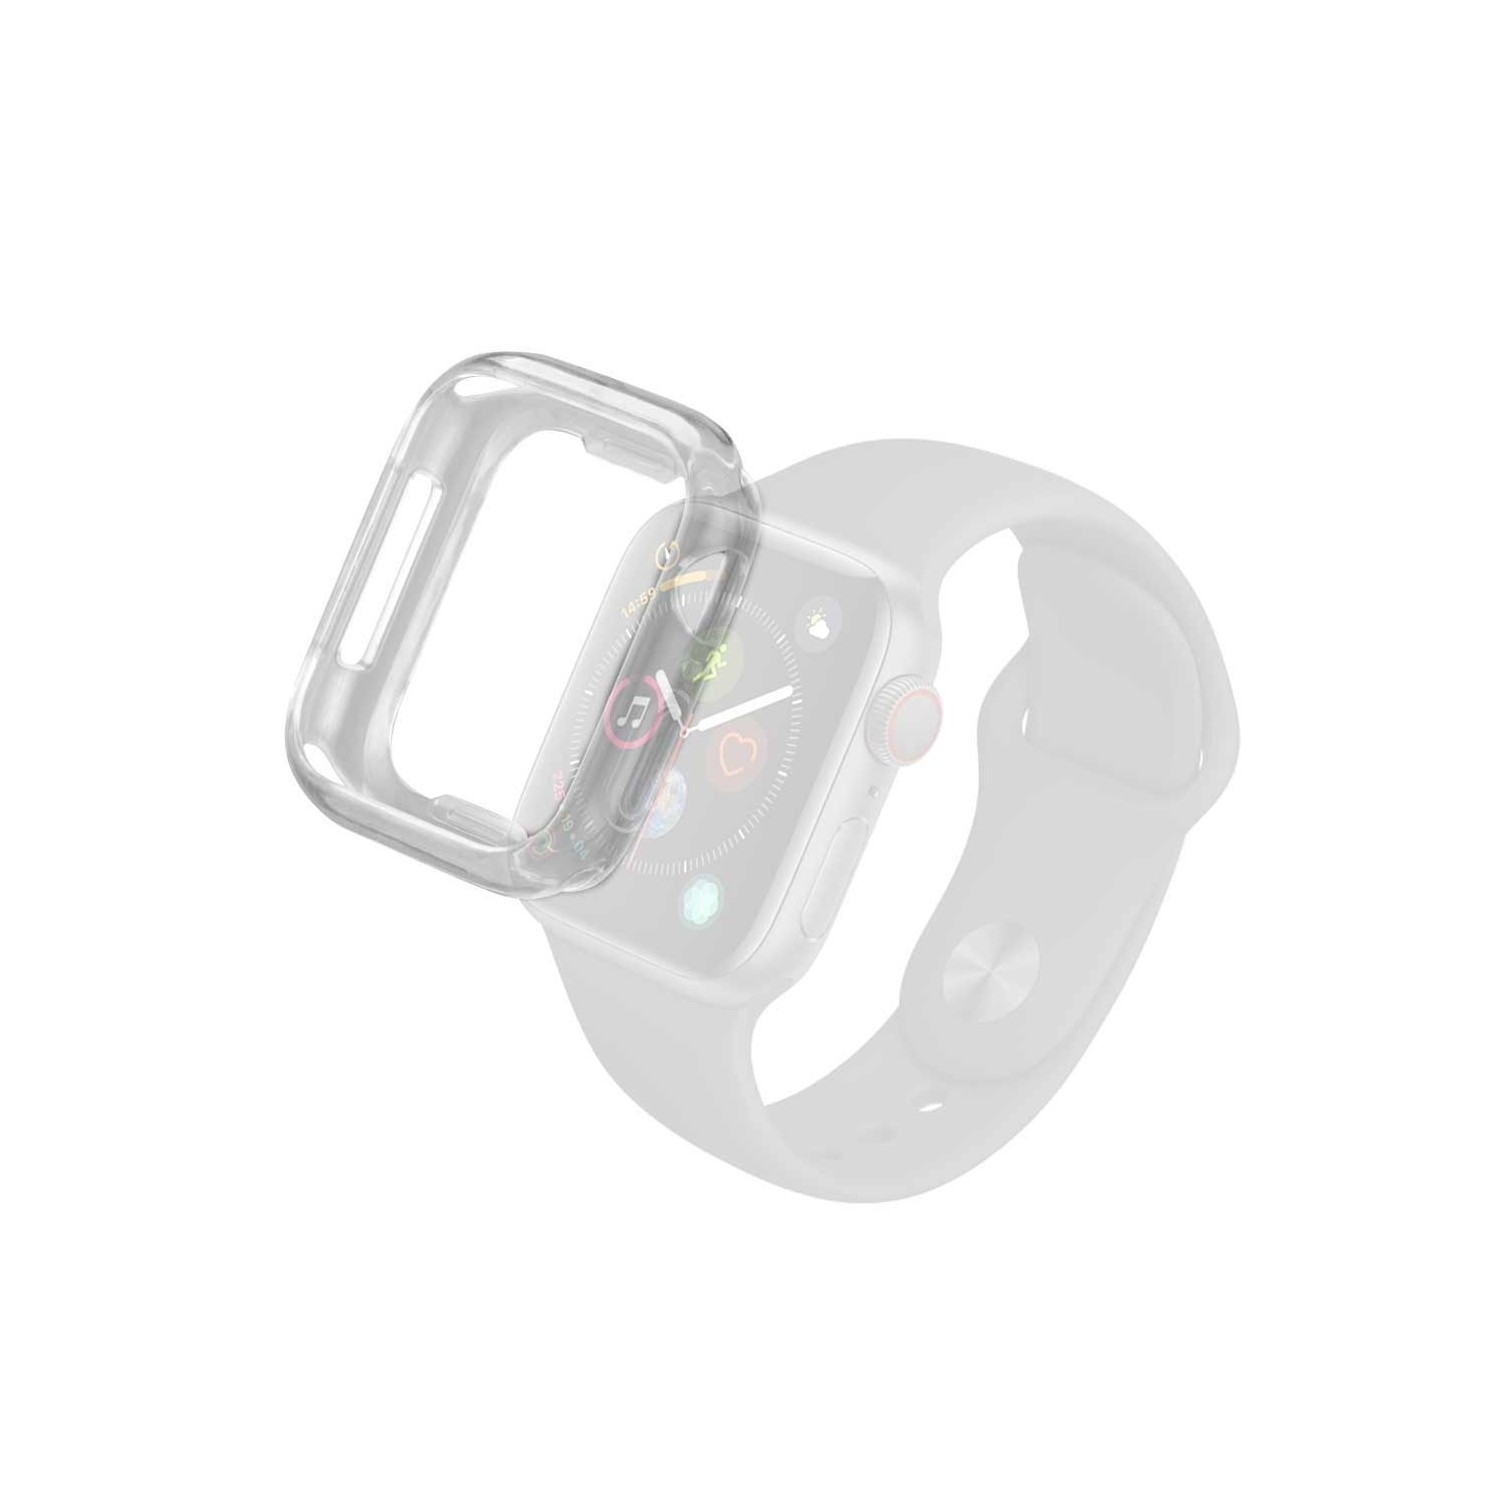 Bumper Plástico suave PC compatible para Apple Watch 44mm Protectora de pantalla